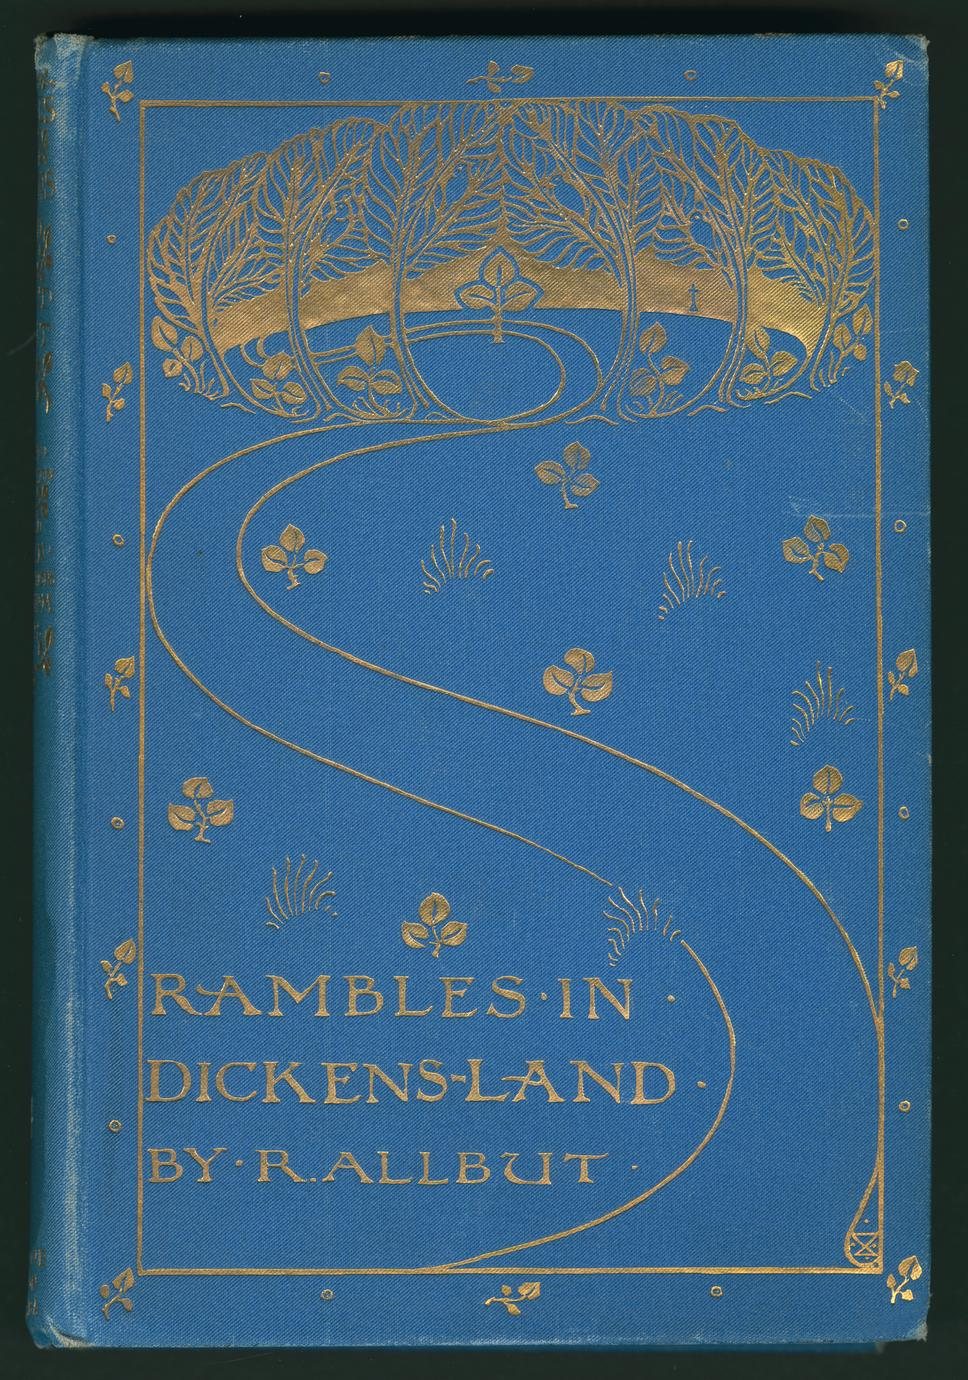 Rambles in Dickens-land (1 of 4)